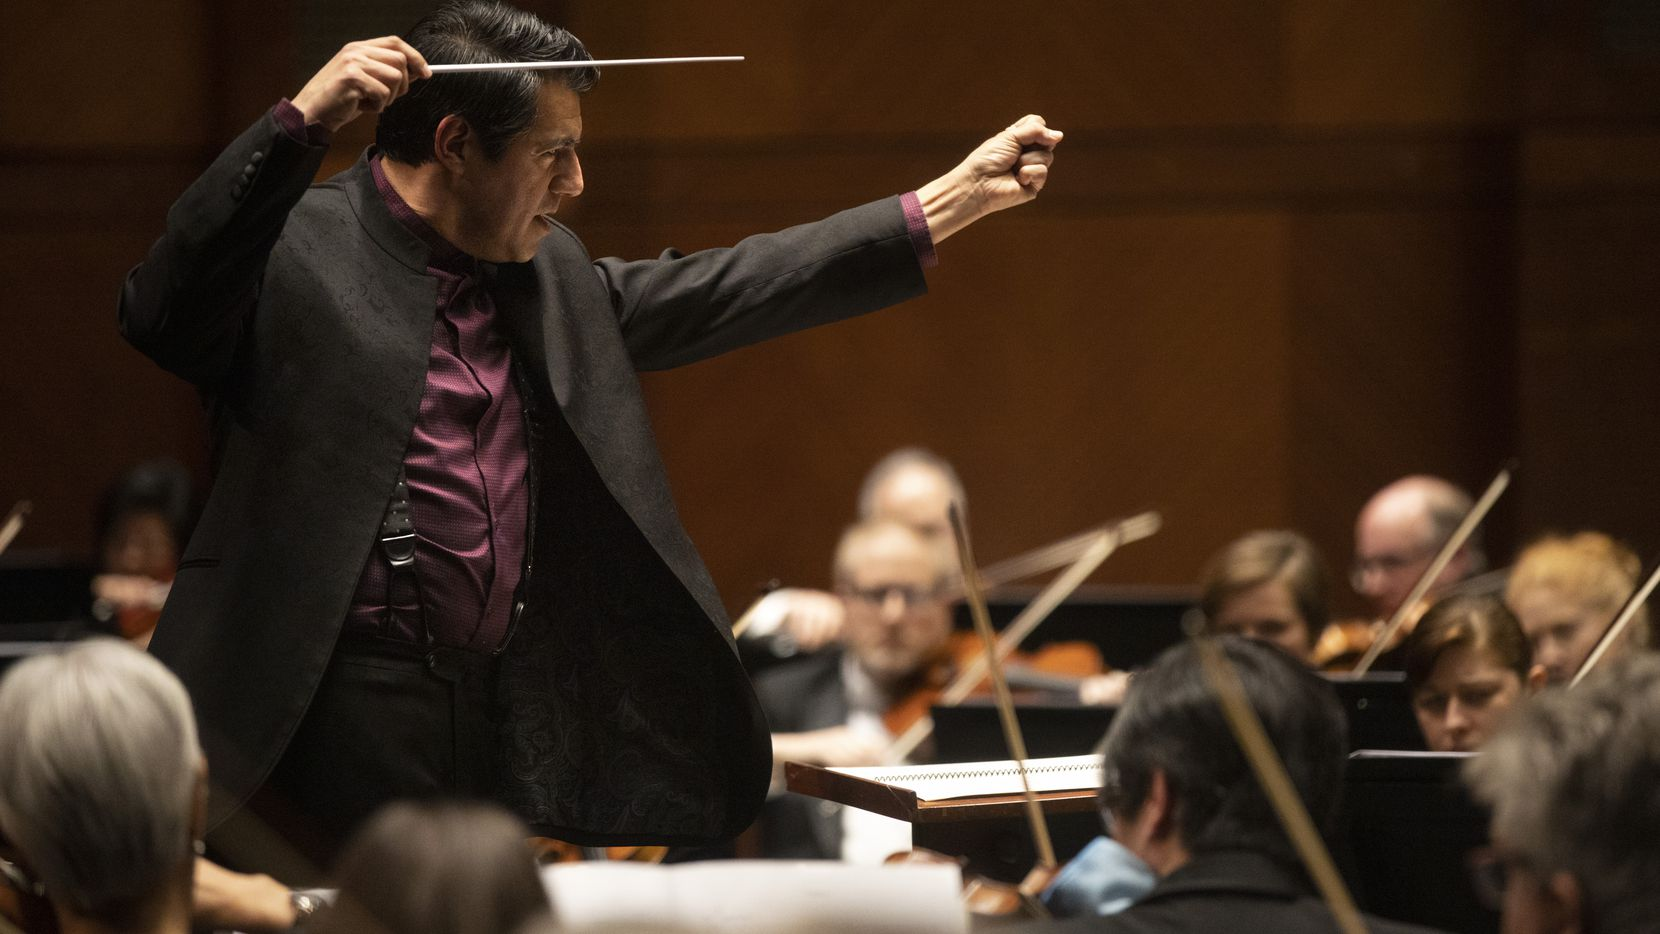 Conductor Miguel Harth-Bedoya leads the Fort Worth Symphony Orchestra in 'Clockworking' by María Huld Markan Sigfúsdóttir during a concert at Bass Performance Hall in Fort Worth, Texas, on Friday, Jan. 10, 2020.